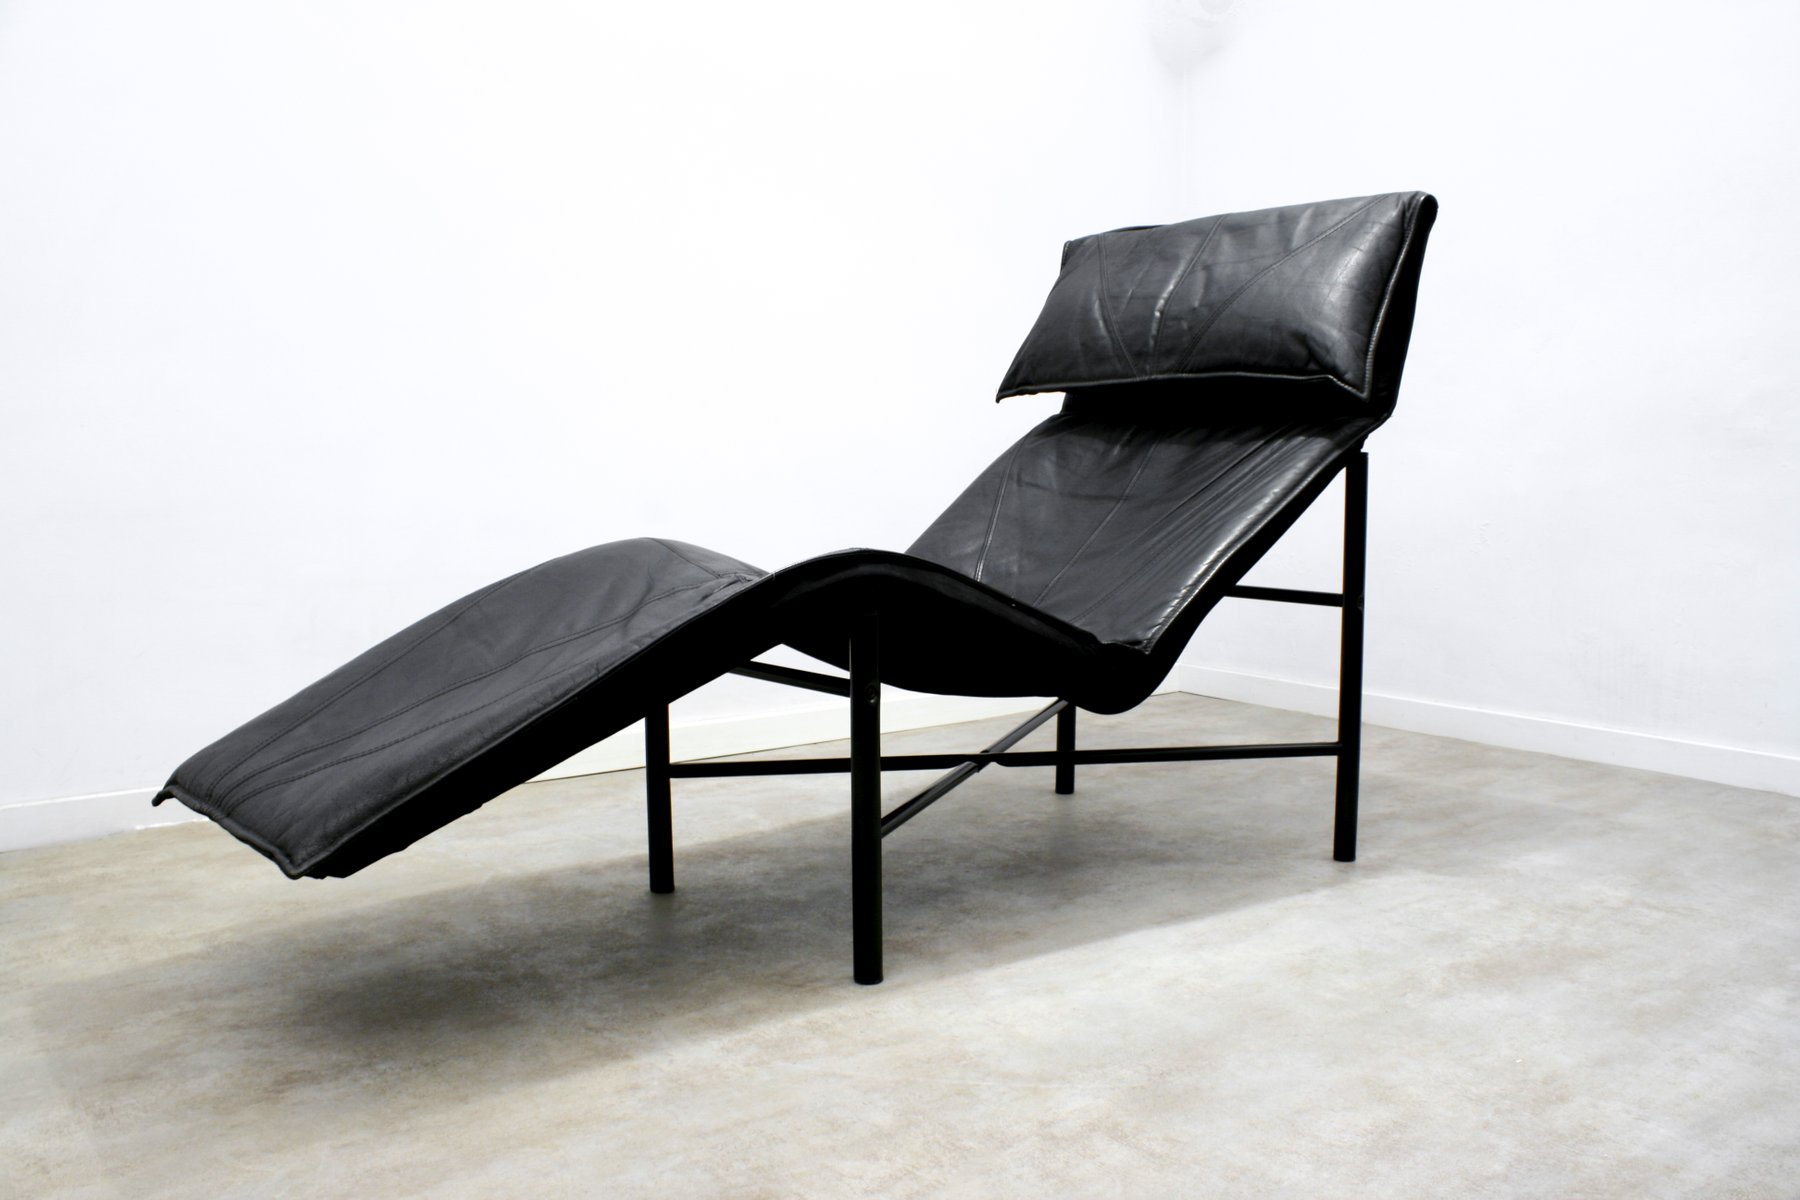 Black Leather Skye Chaise Longue By Tord Bjorklund For Ikea 1980s